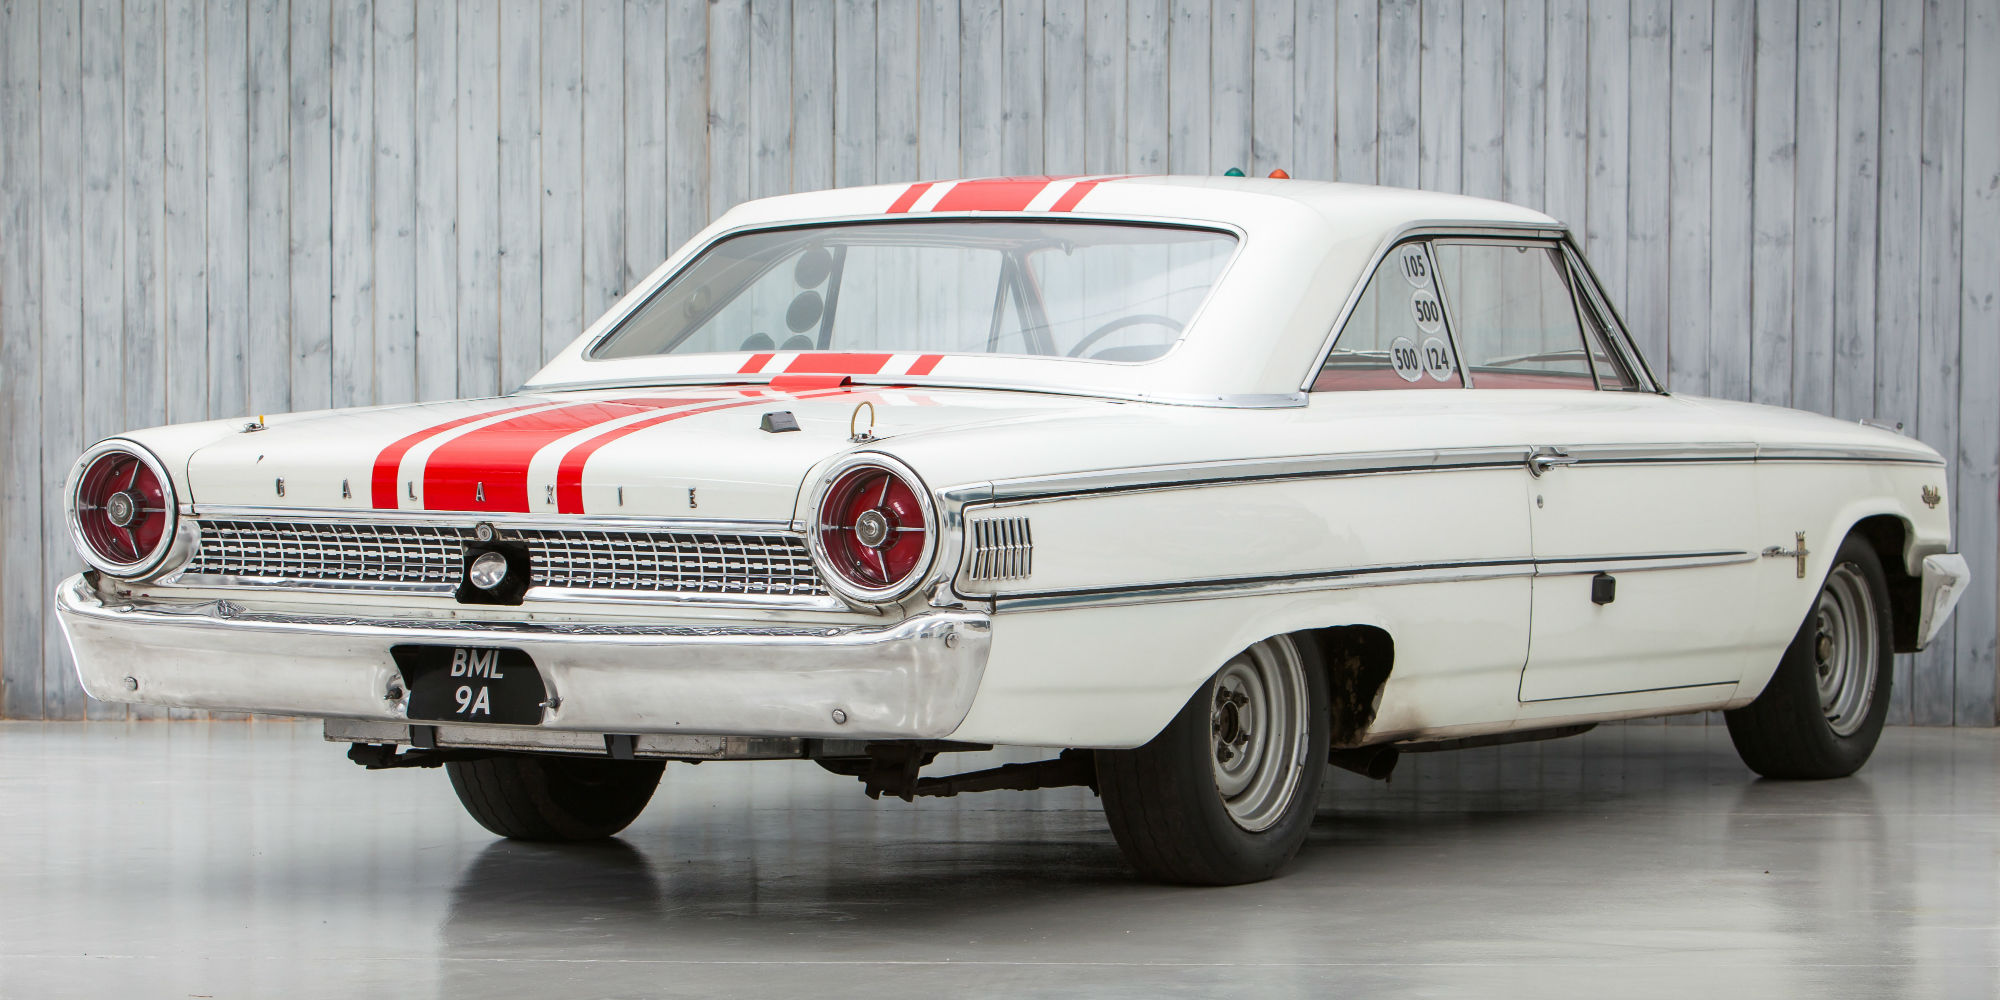 The Ex – Jack Sears, Willment Racing Team, British Saloon Car Champion 1963 Ford Galaxie 500 'R-Code' Lightweight